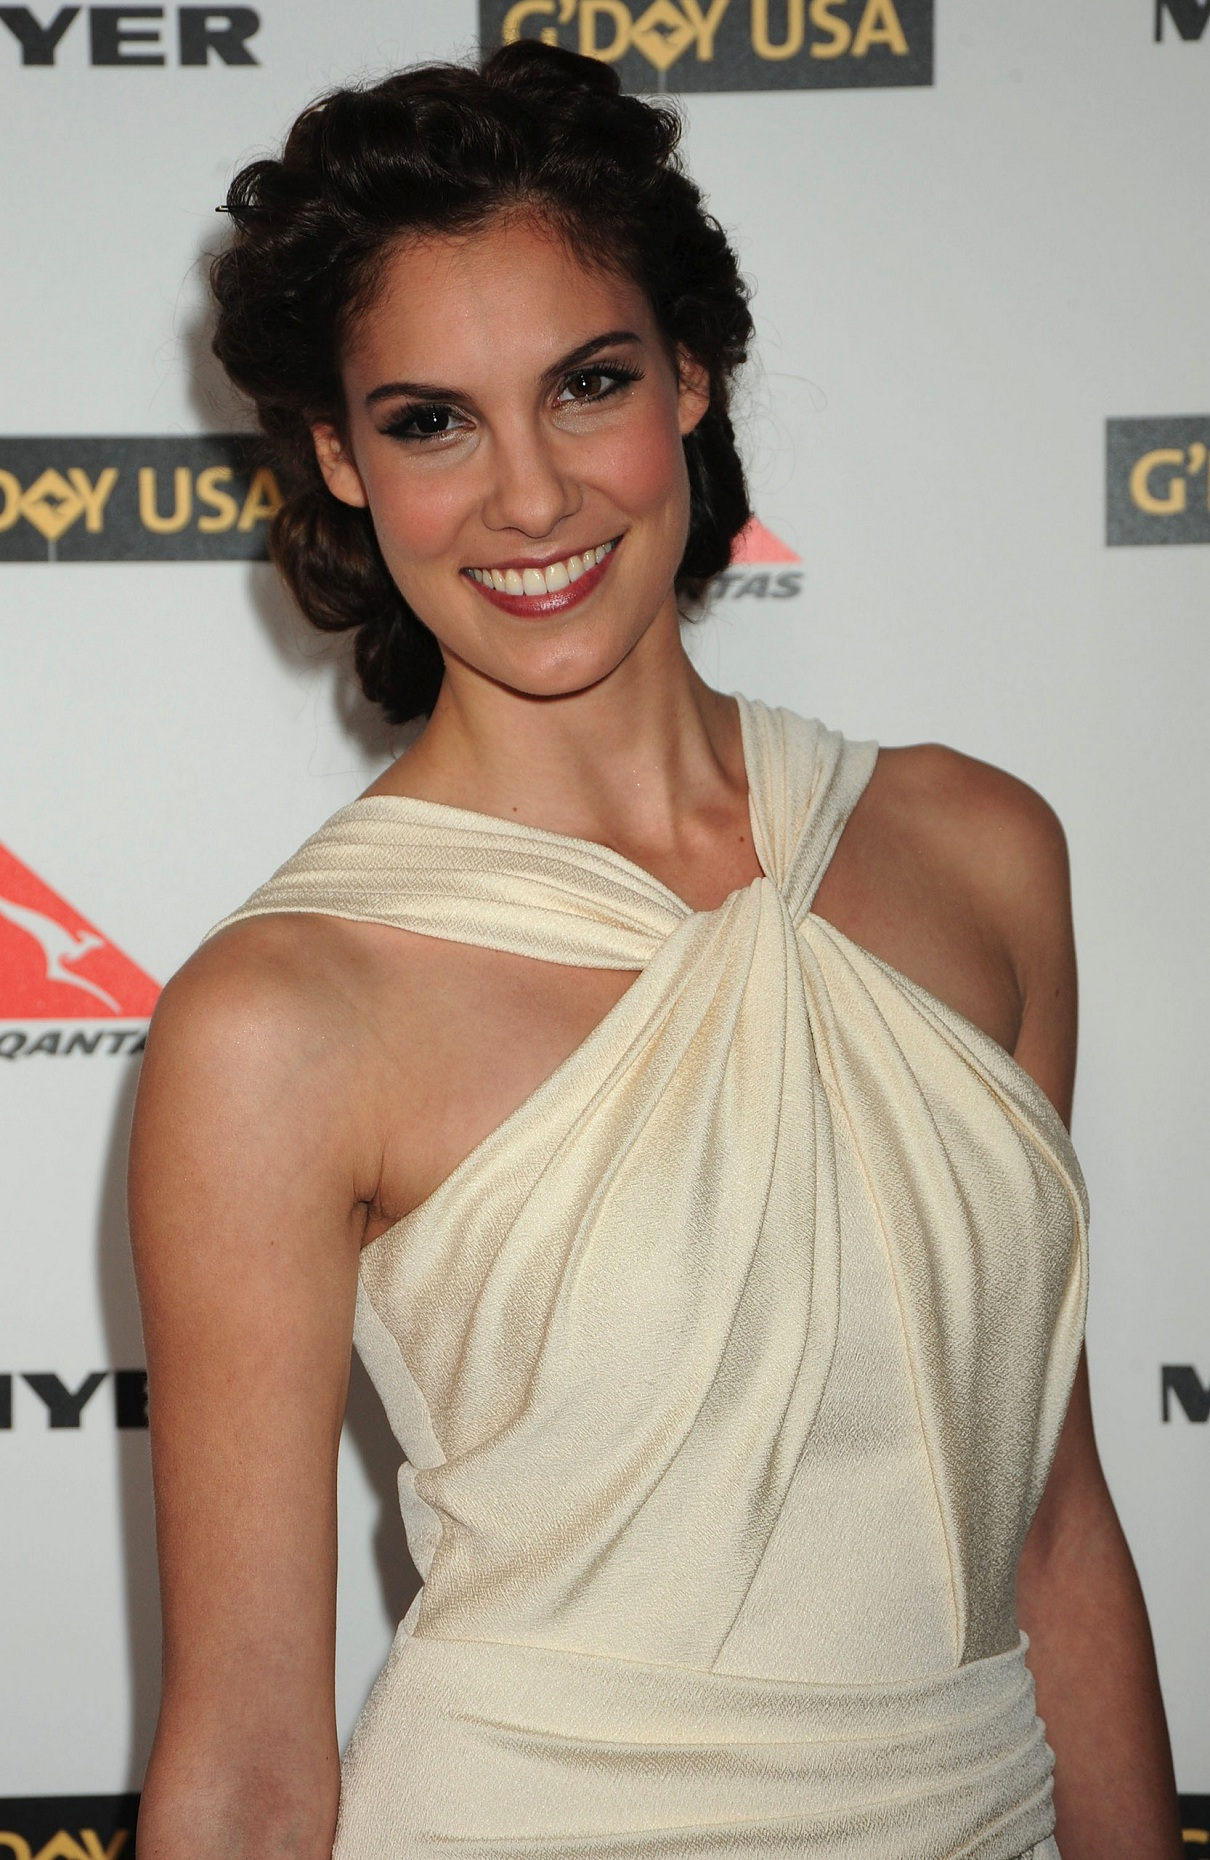 Hot Daniela Ruah Bikini Pictures - Look Very Sexy In Different Eyes Color